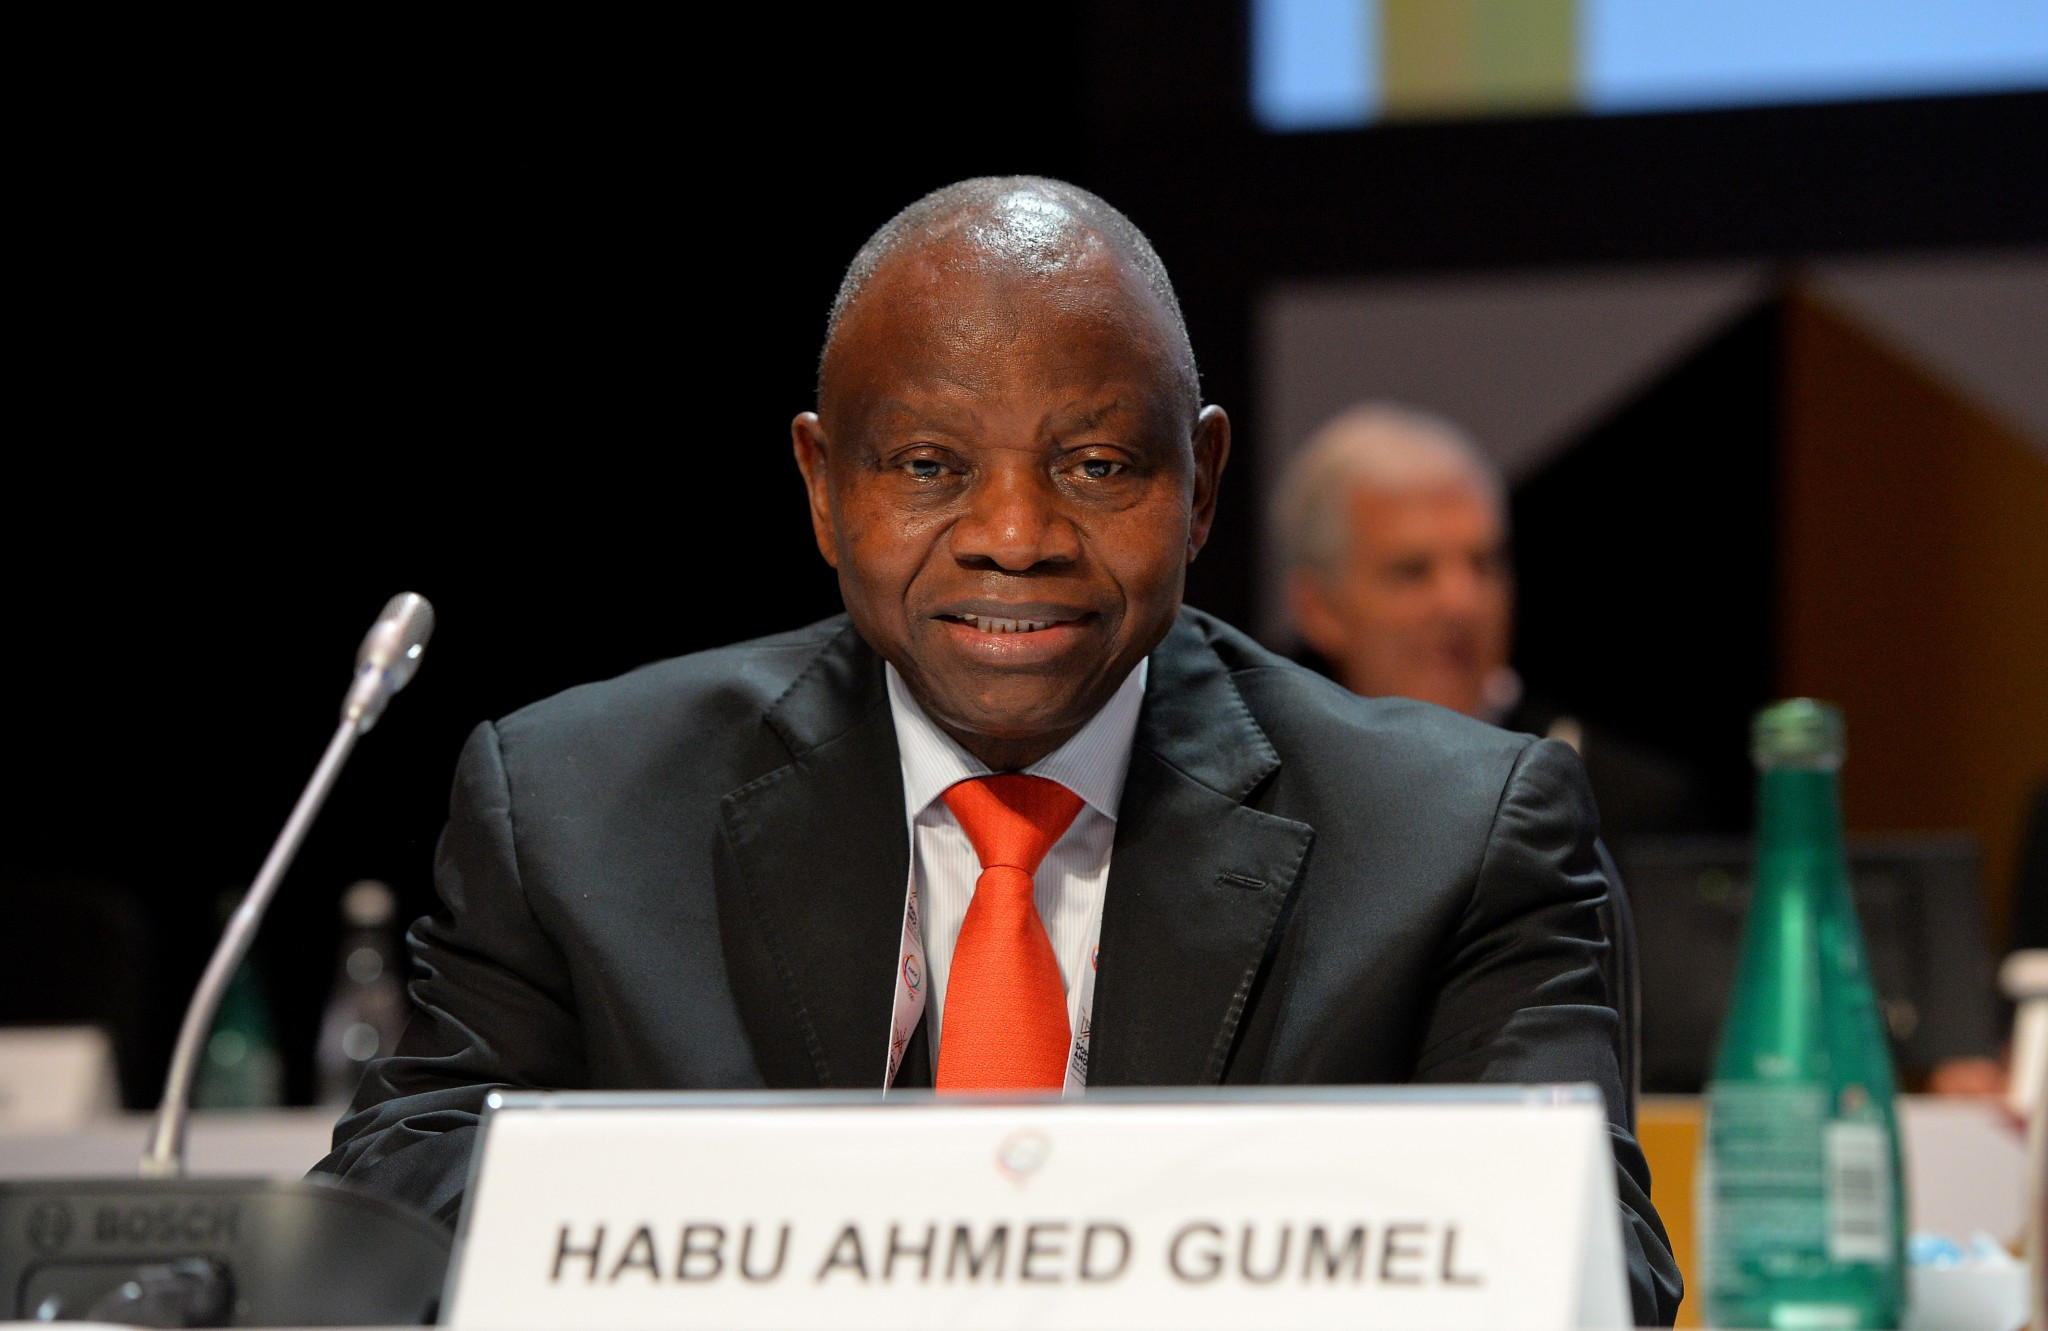 Habu Gumel thanked the IOC for helping to organise the event ©Getty Images